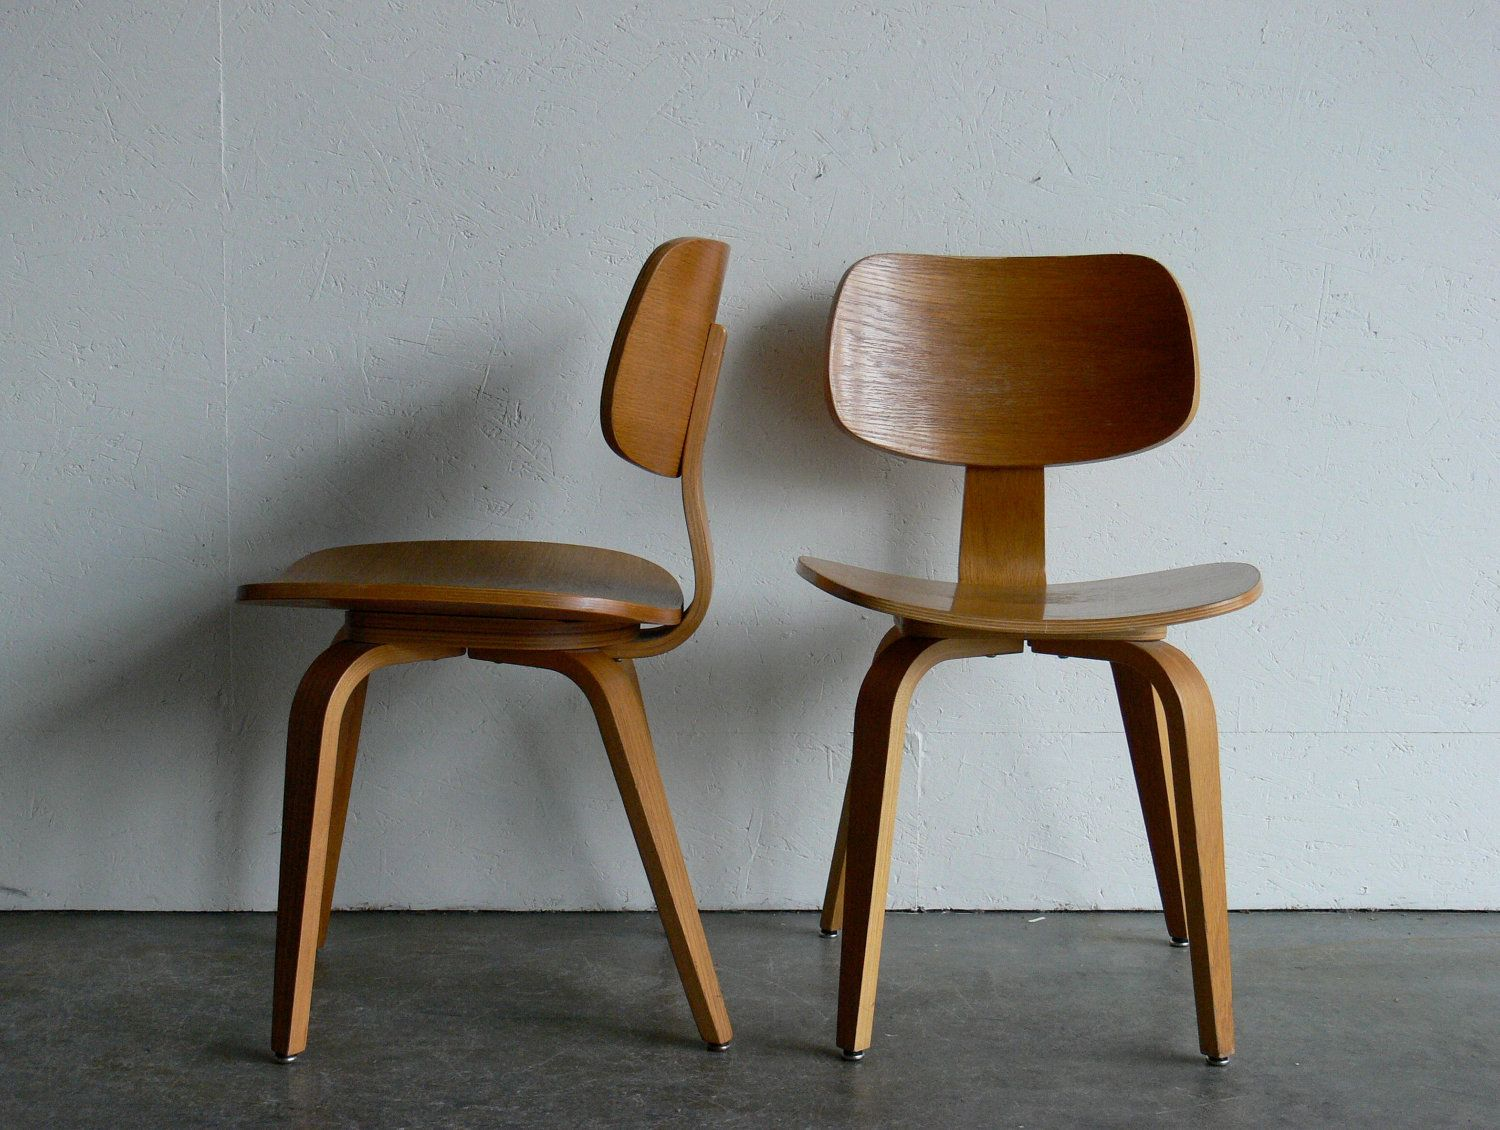 Vintage bentwood chairs - Vintage Mid Century Modern Thonet Plywood Chair Set Of 2 Modern Plywood And Plywood Chair